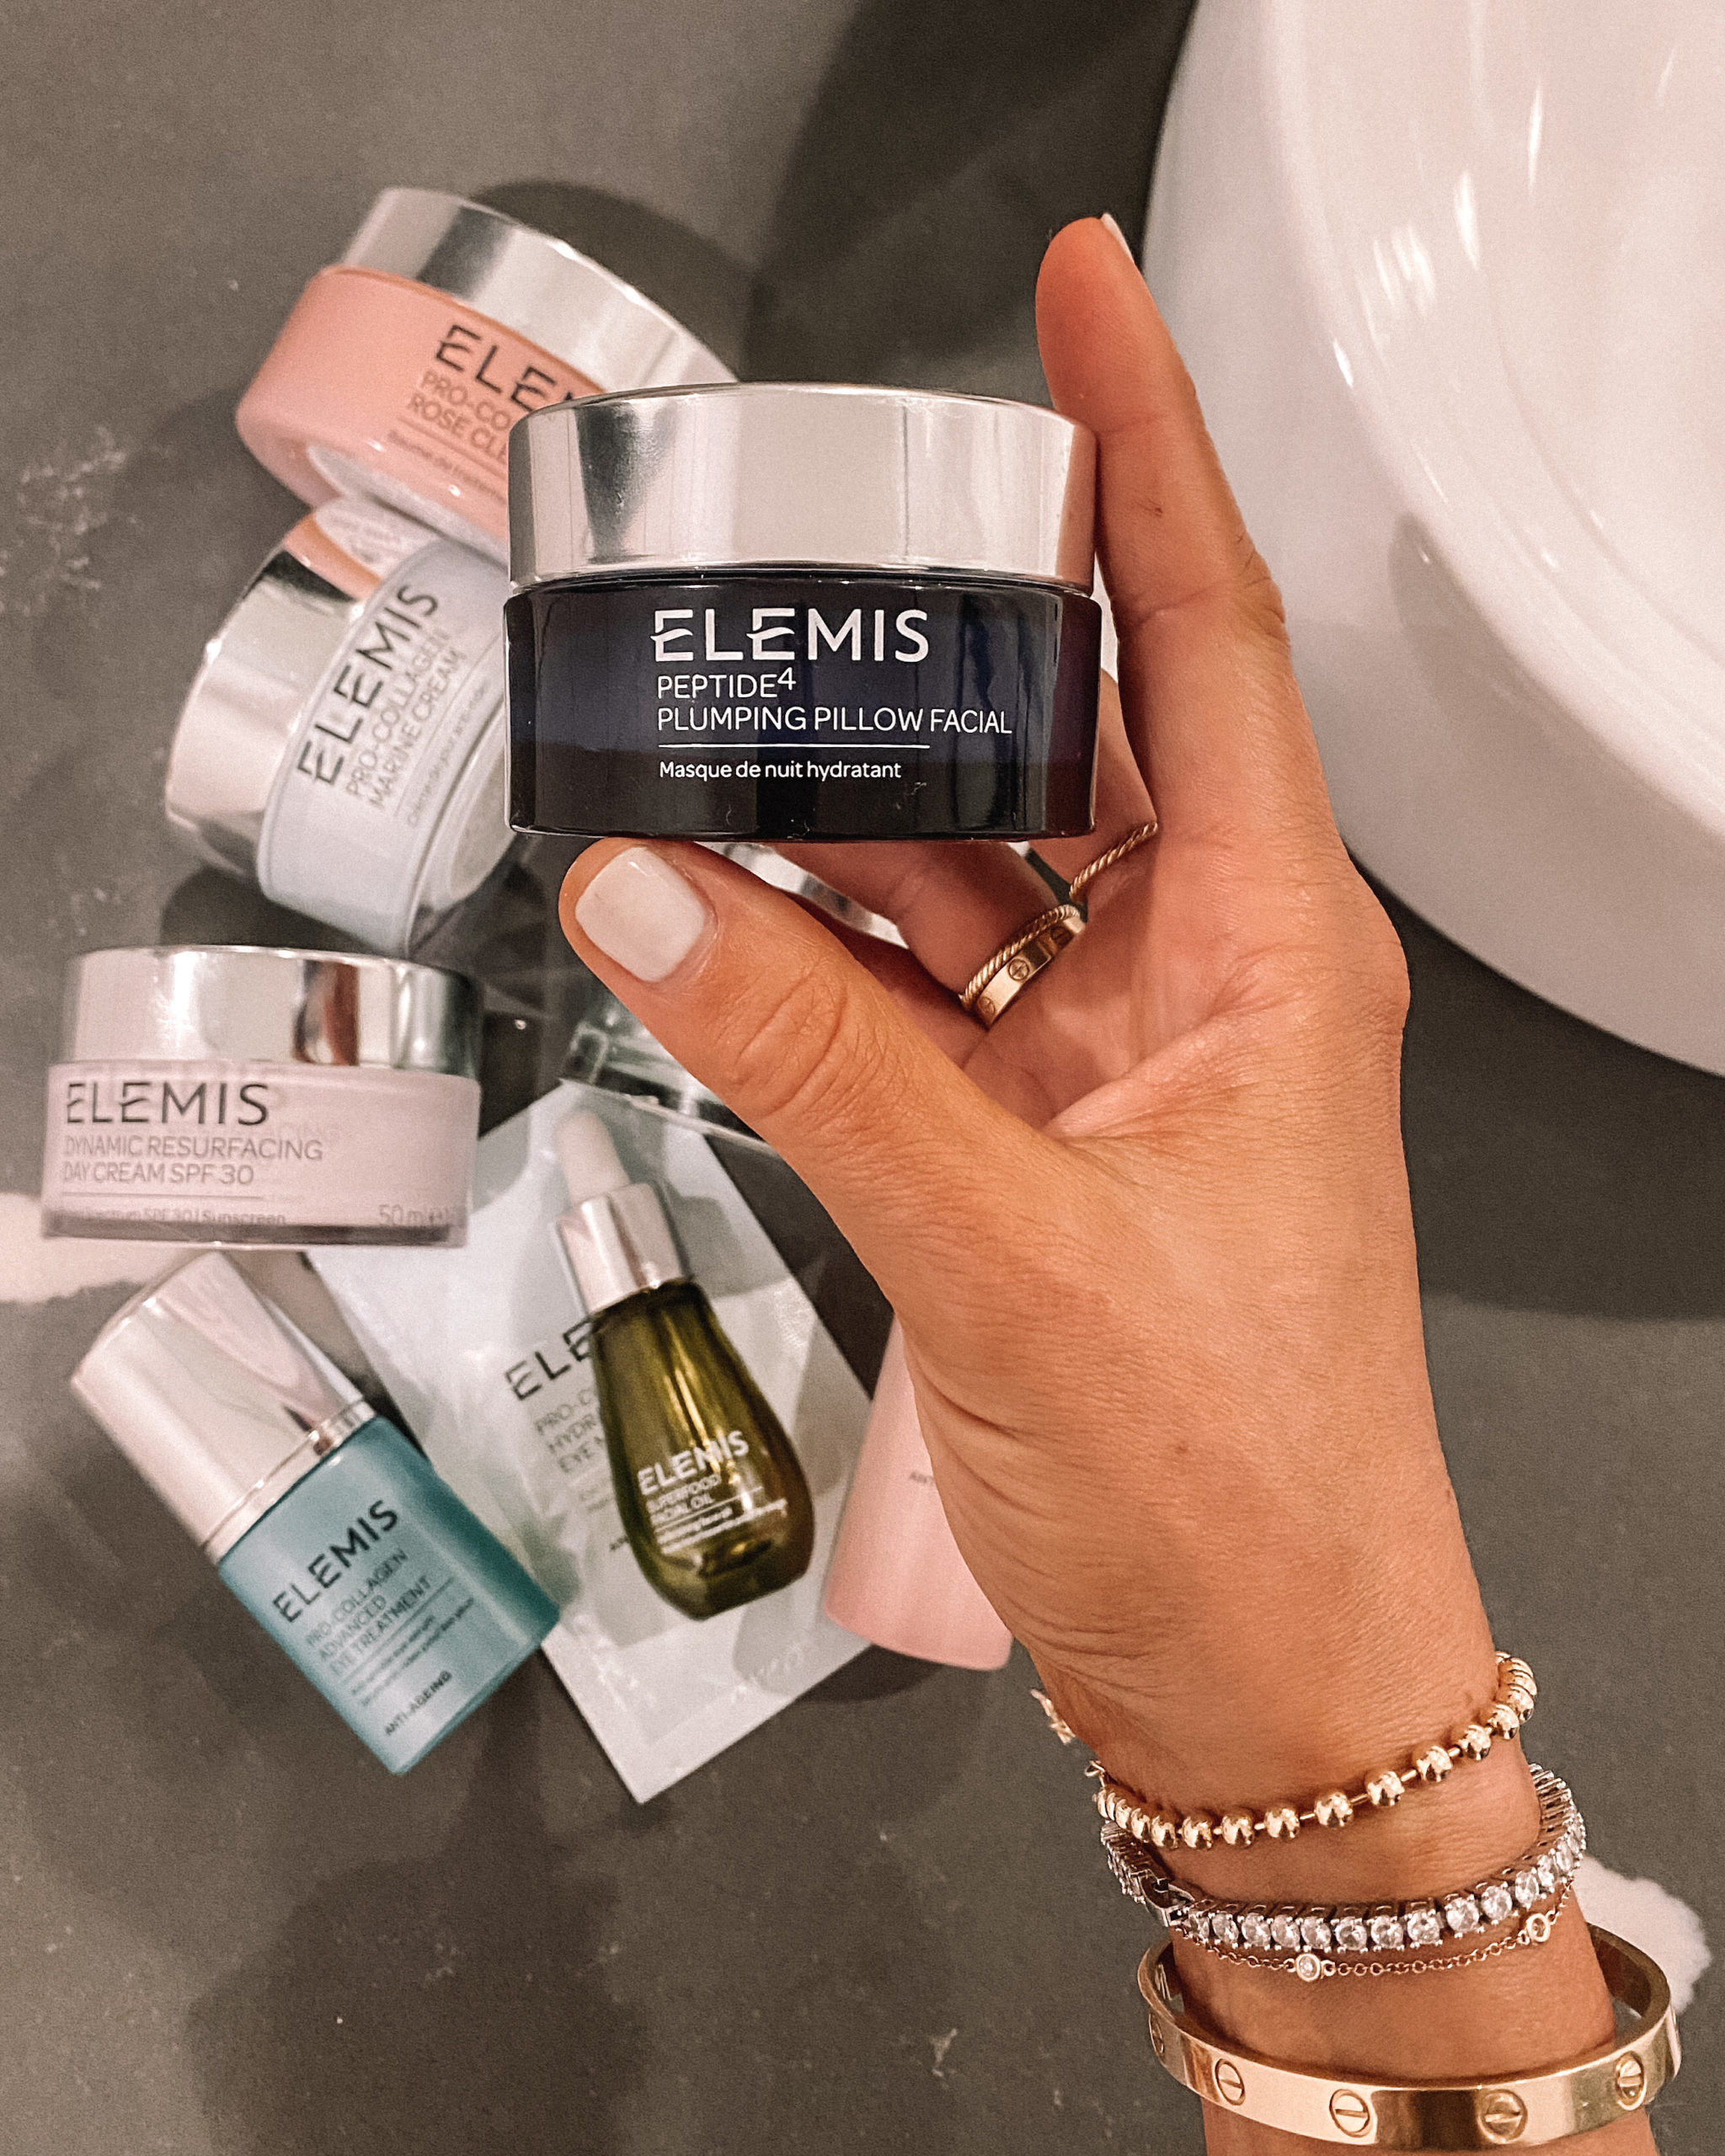 Fashion Jackson Elemis Peptide⁴ Plumping Pillow Facial